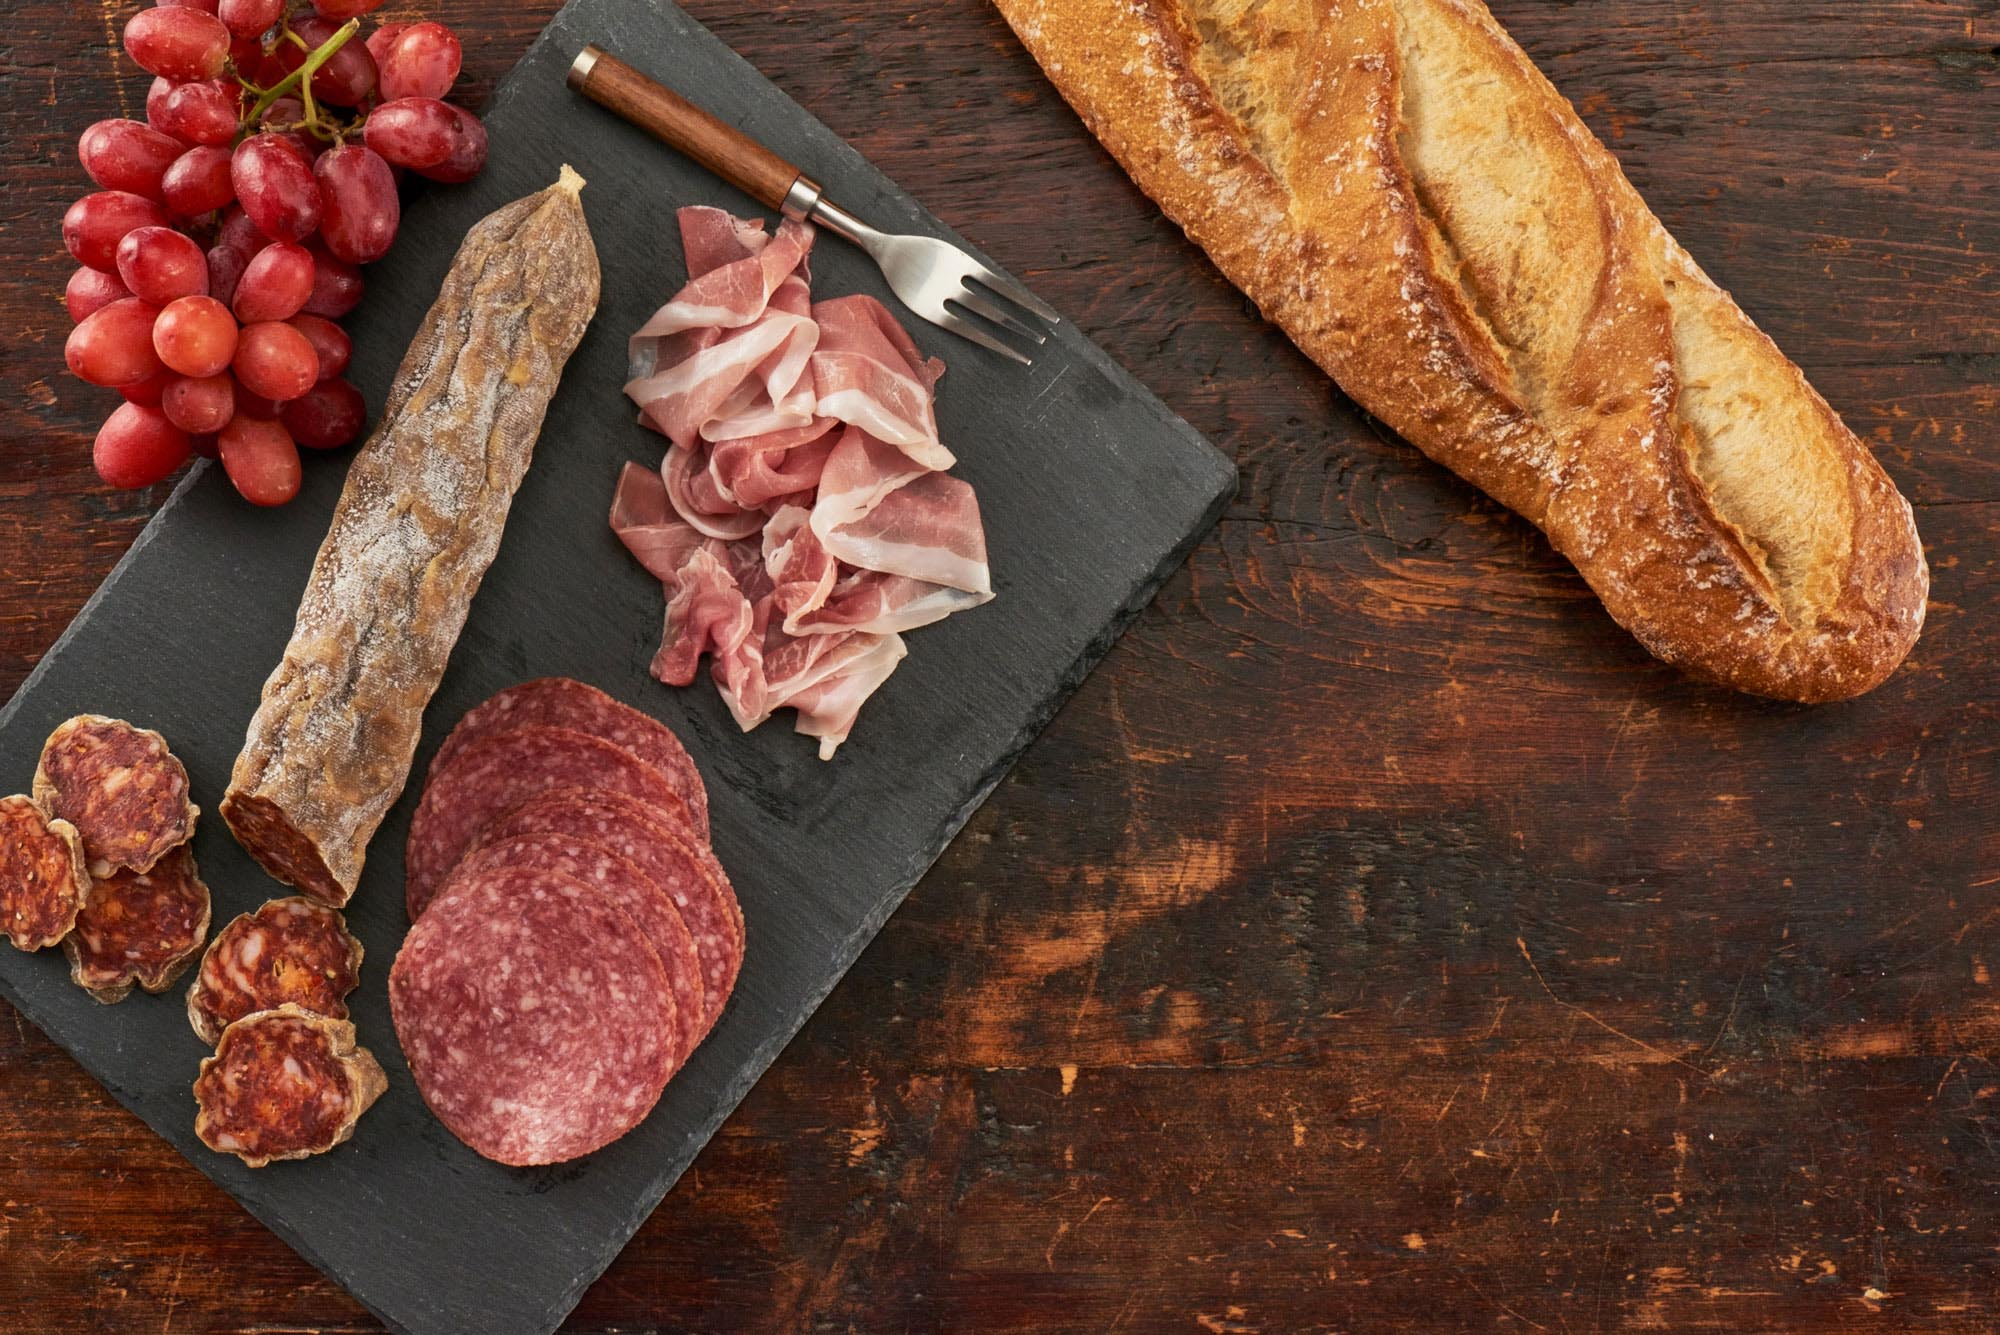 BJs_2016-11-03_Charcuterie_Selects_004